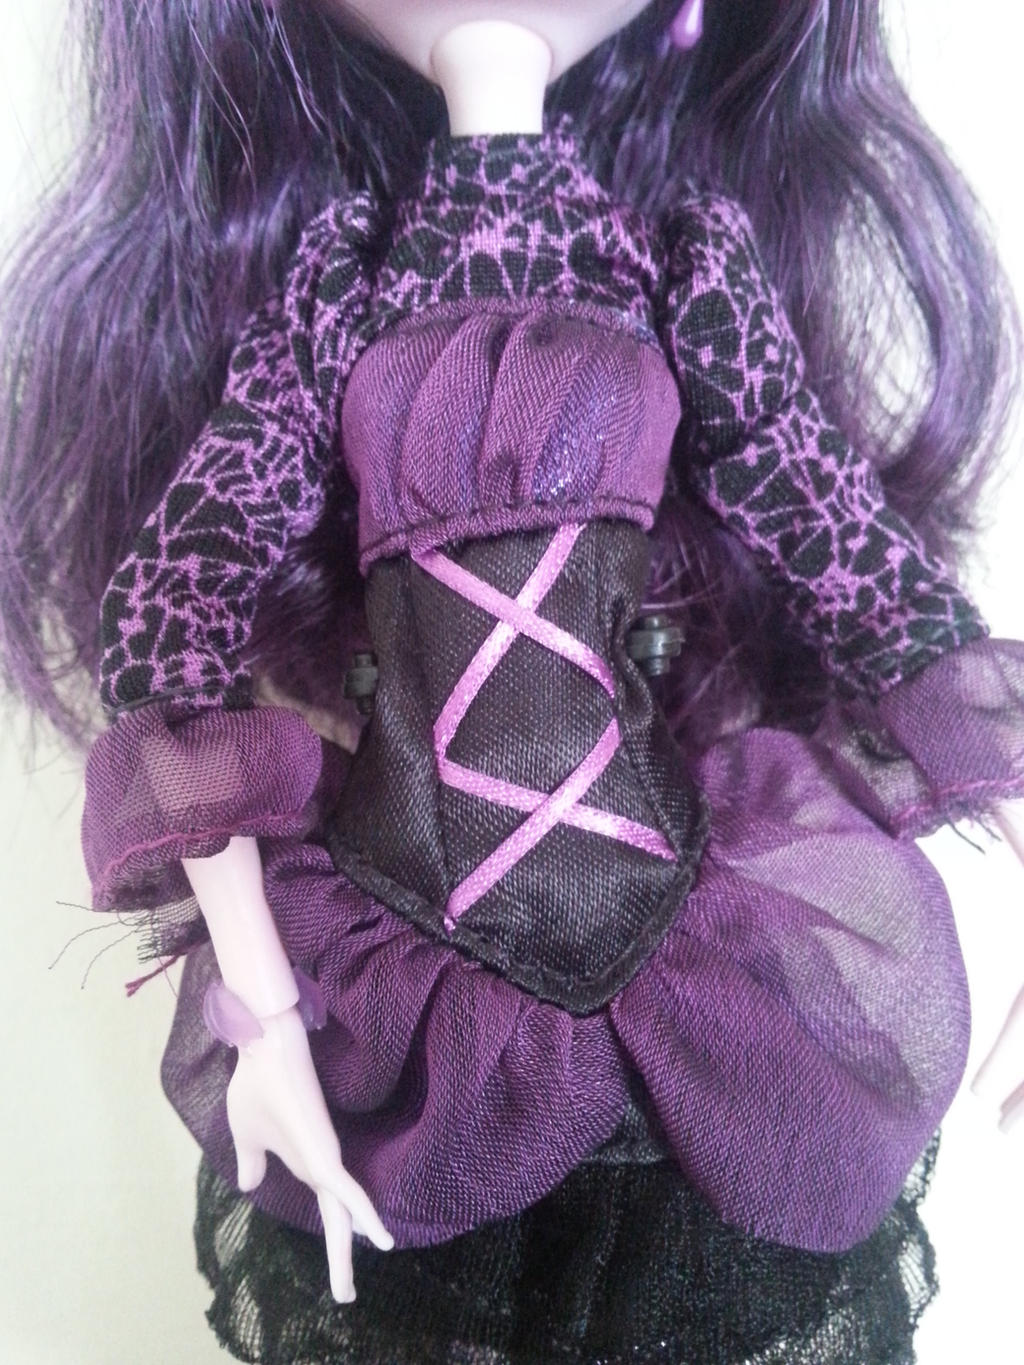 Dolls Within Pictures: Elissabat Review